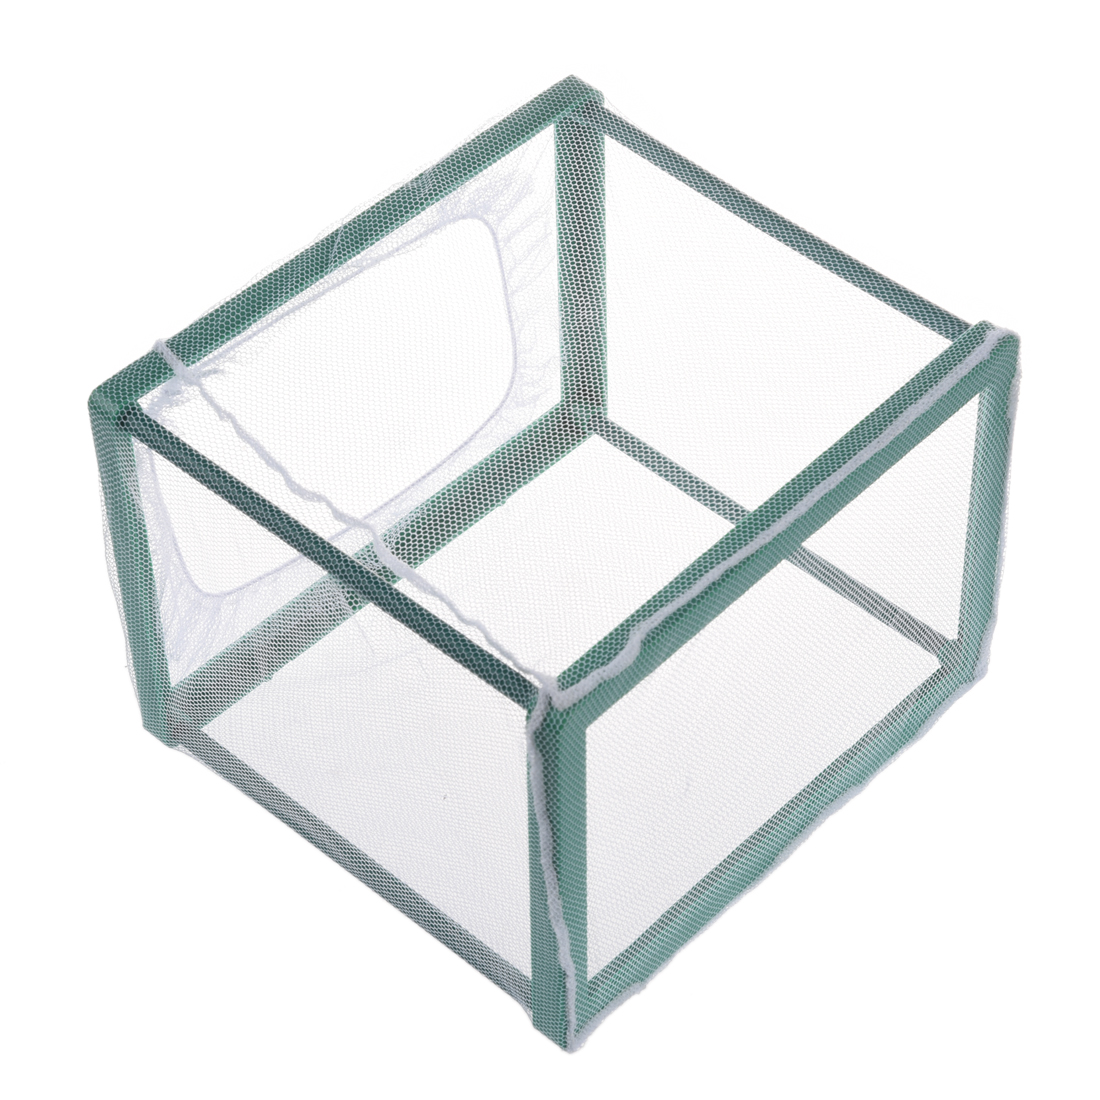 Aquarium fish tank fry net breeder breeding hatchery - Aquarium Fish Tank Fry Net Breeder Breeding Hatchery Specially Designed Aquarium Net Breeder Safely Separates New Born Fry From Their Mother And Other